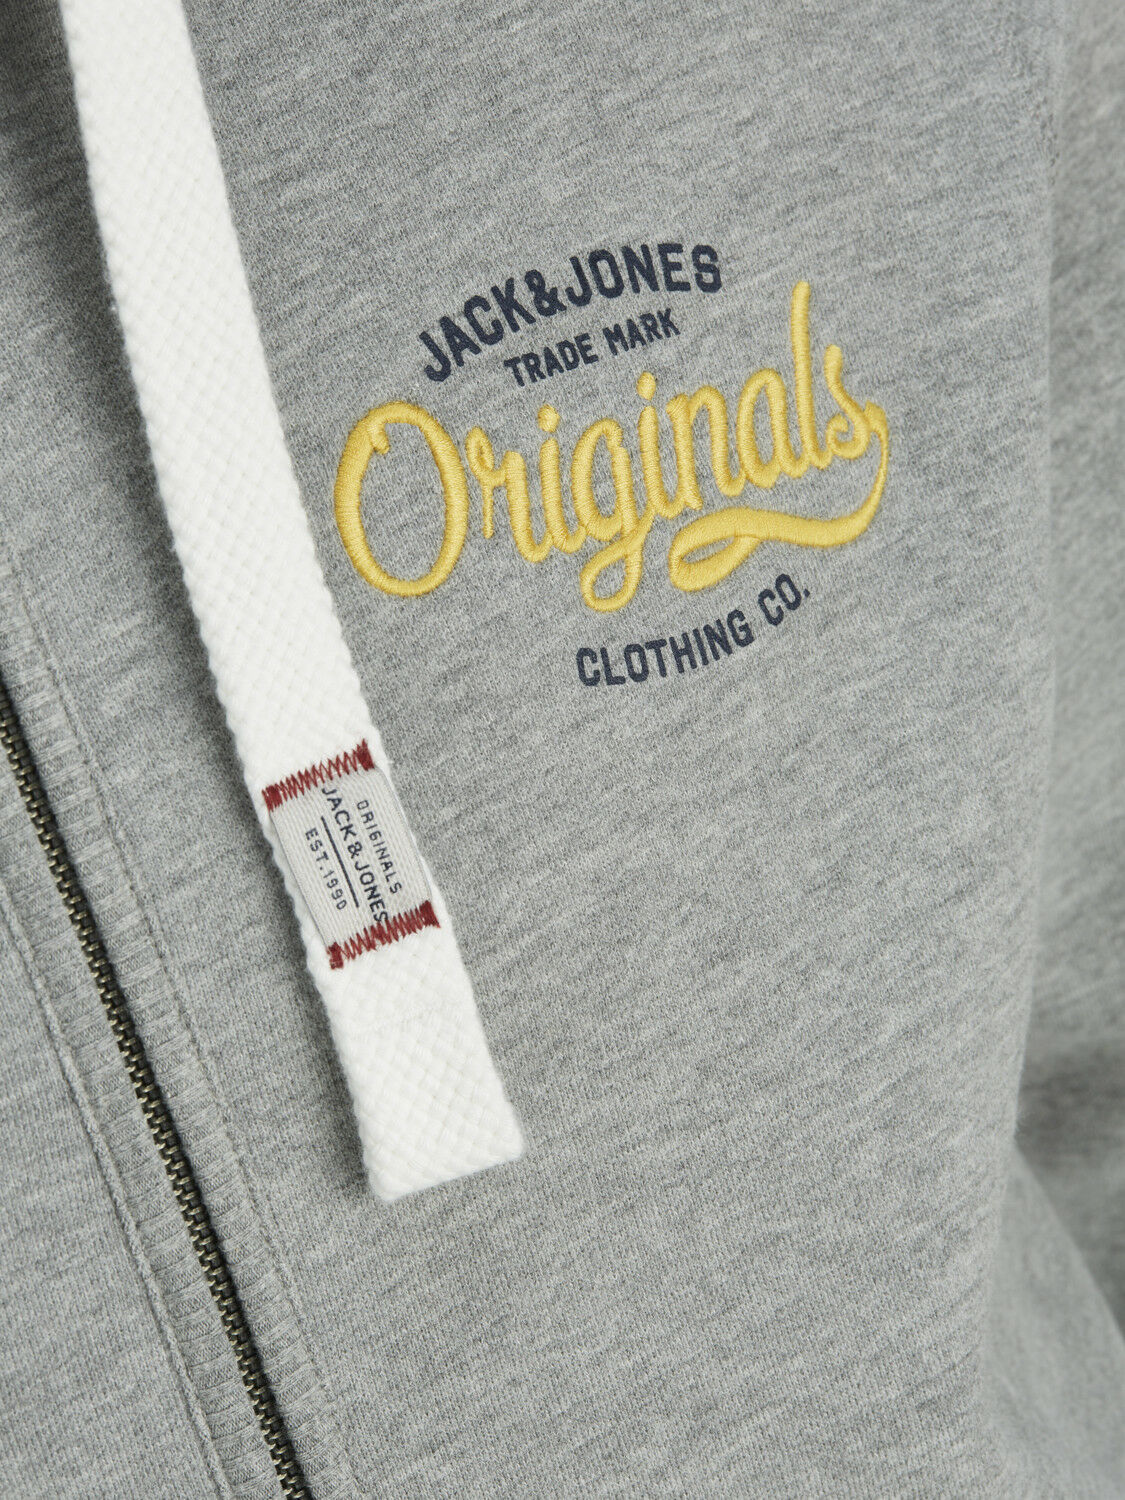 JACK & JONES Herren Sweatjacke jORfara Kapuzenpulli Zip Hoodie Slim Fit S - XXL